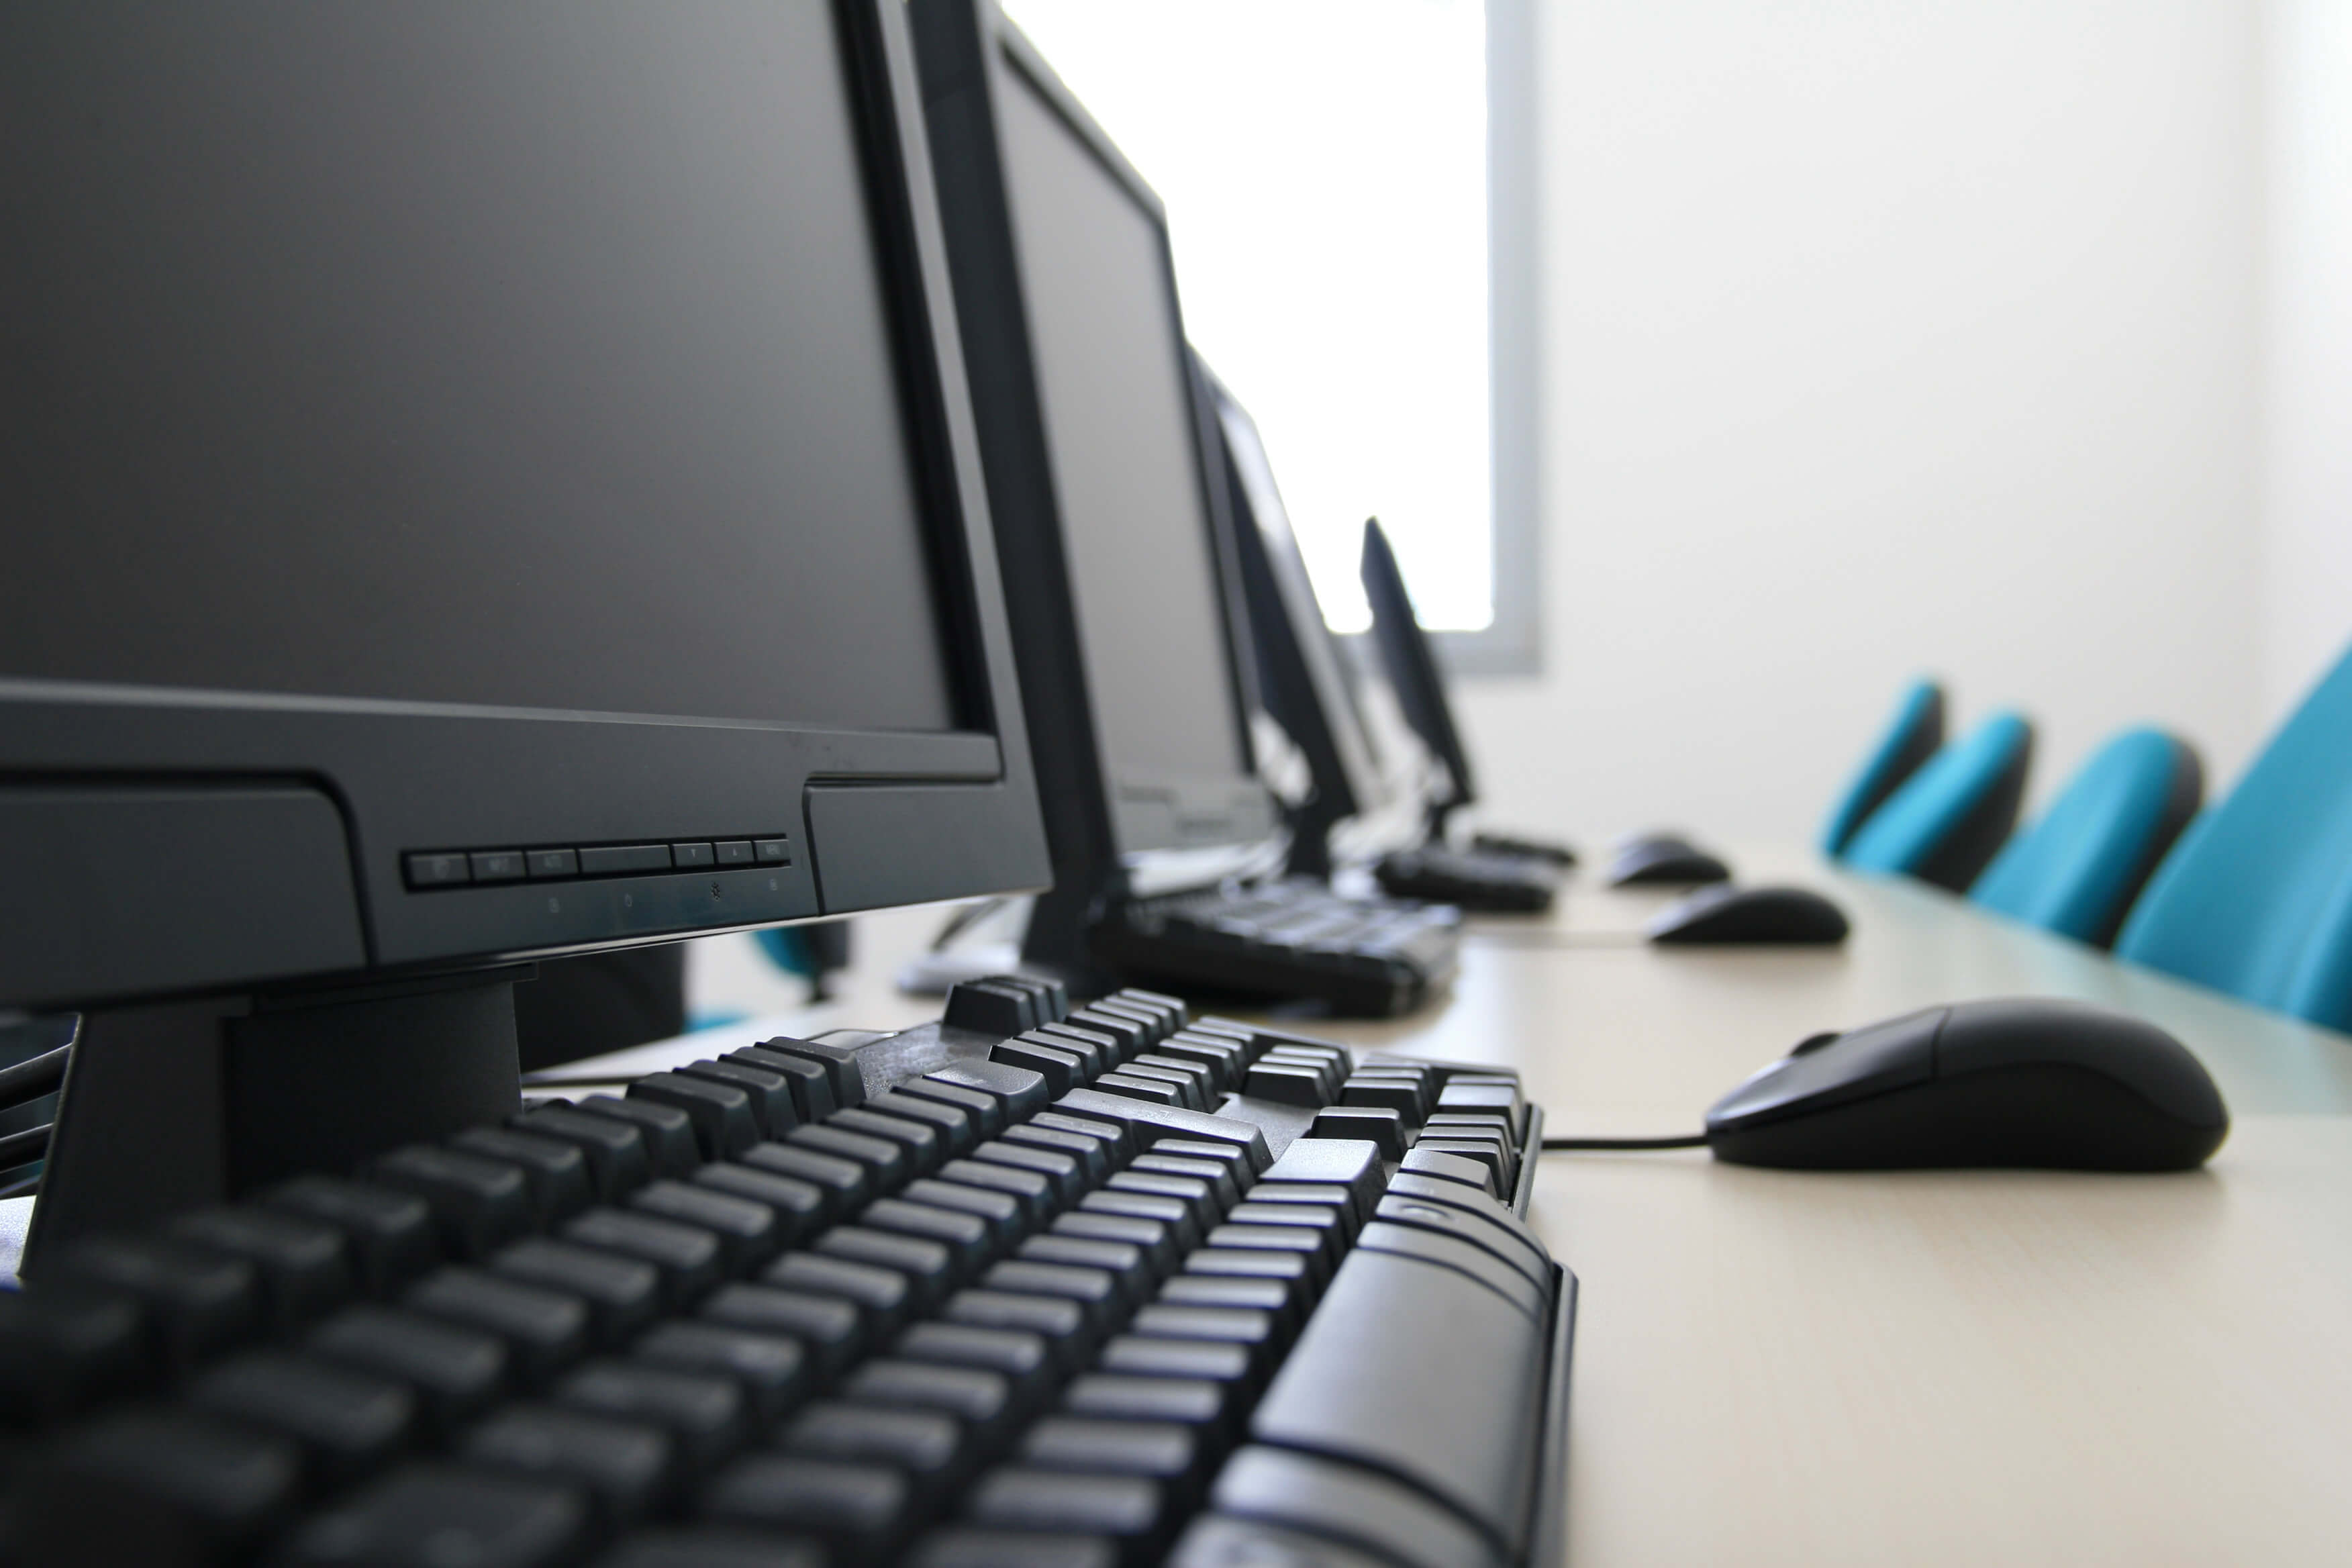 Workplace Computers